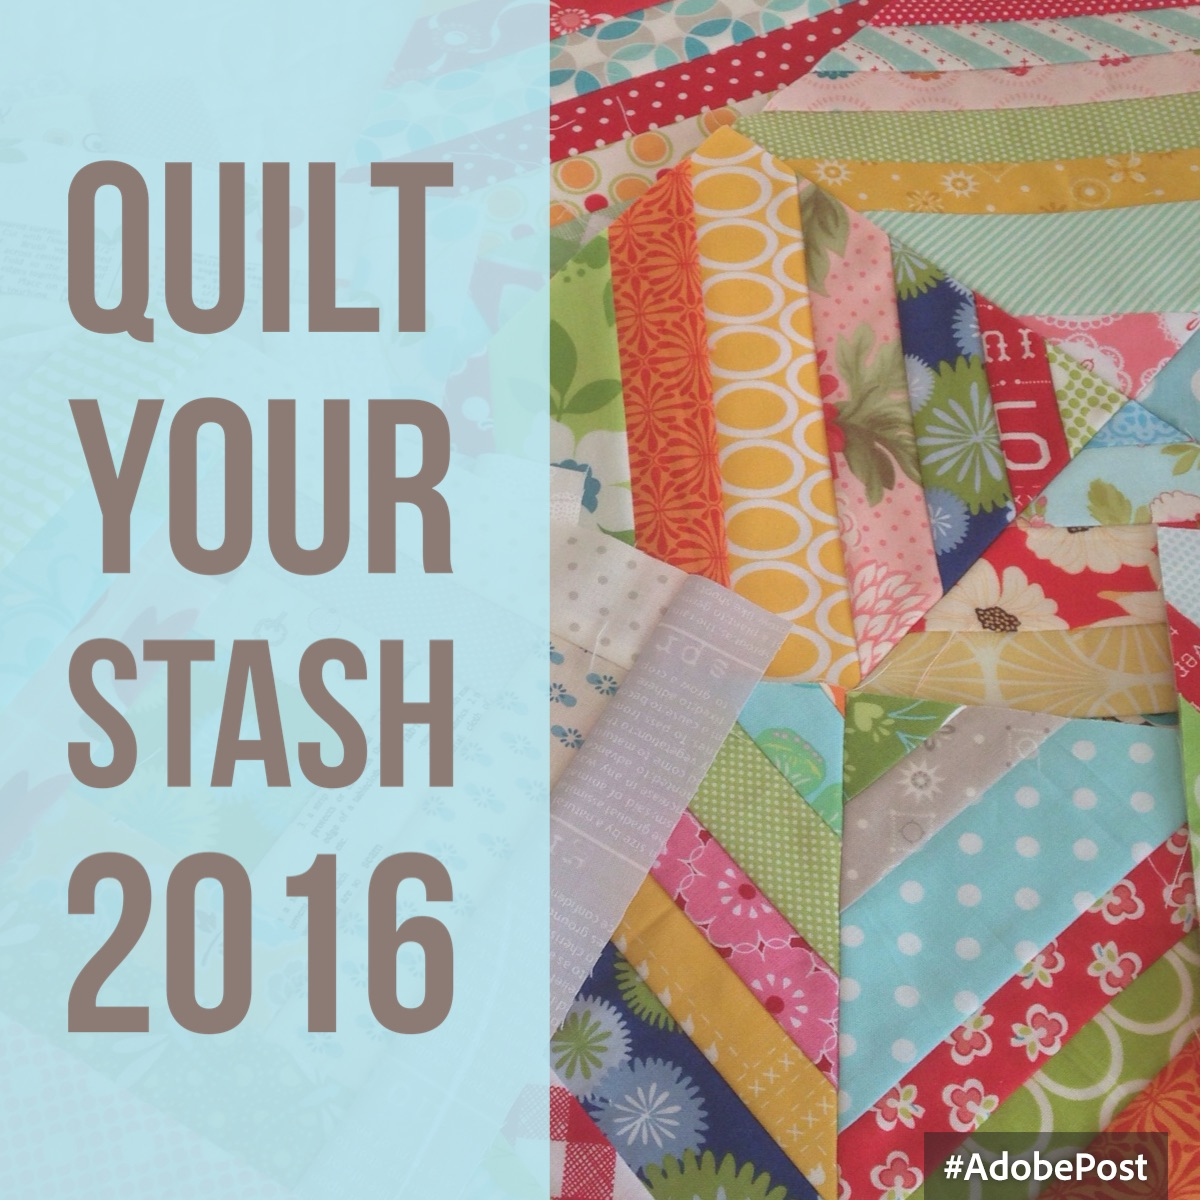 Quilt Your Stash